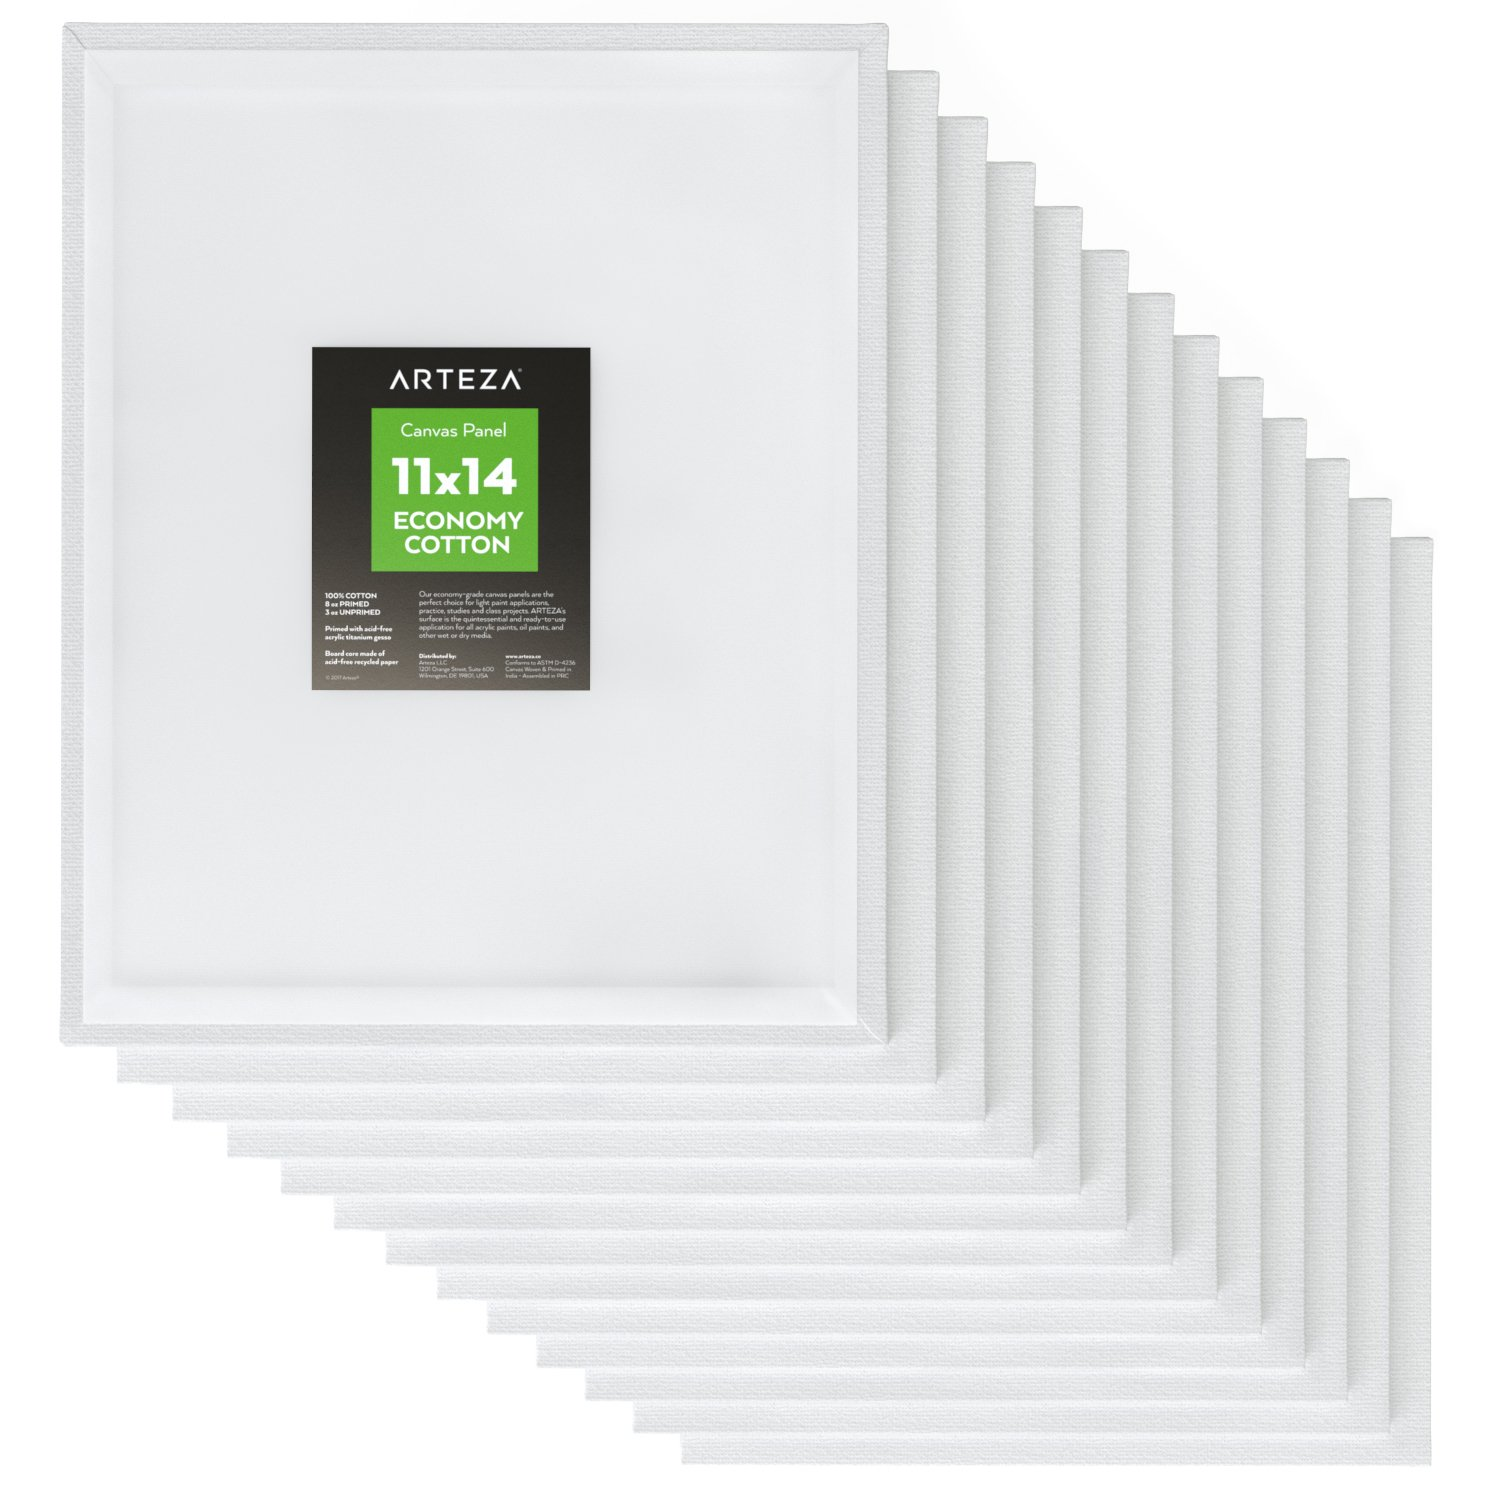 Arteza 11x14'' White Blank Canvas Panel Boards, Bulk Pack of 14, Primed, 100% Cotton for Acrylic Painting, Oil Paint & Wet Art Media, Canvases for Professional Artist, Hobby Painters & Beginners by ARTEZA (Image #1)